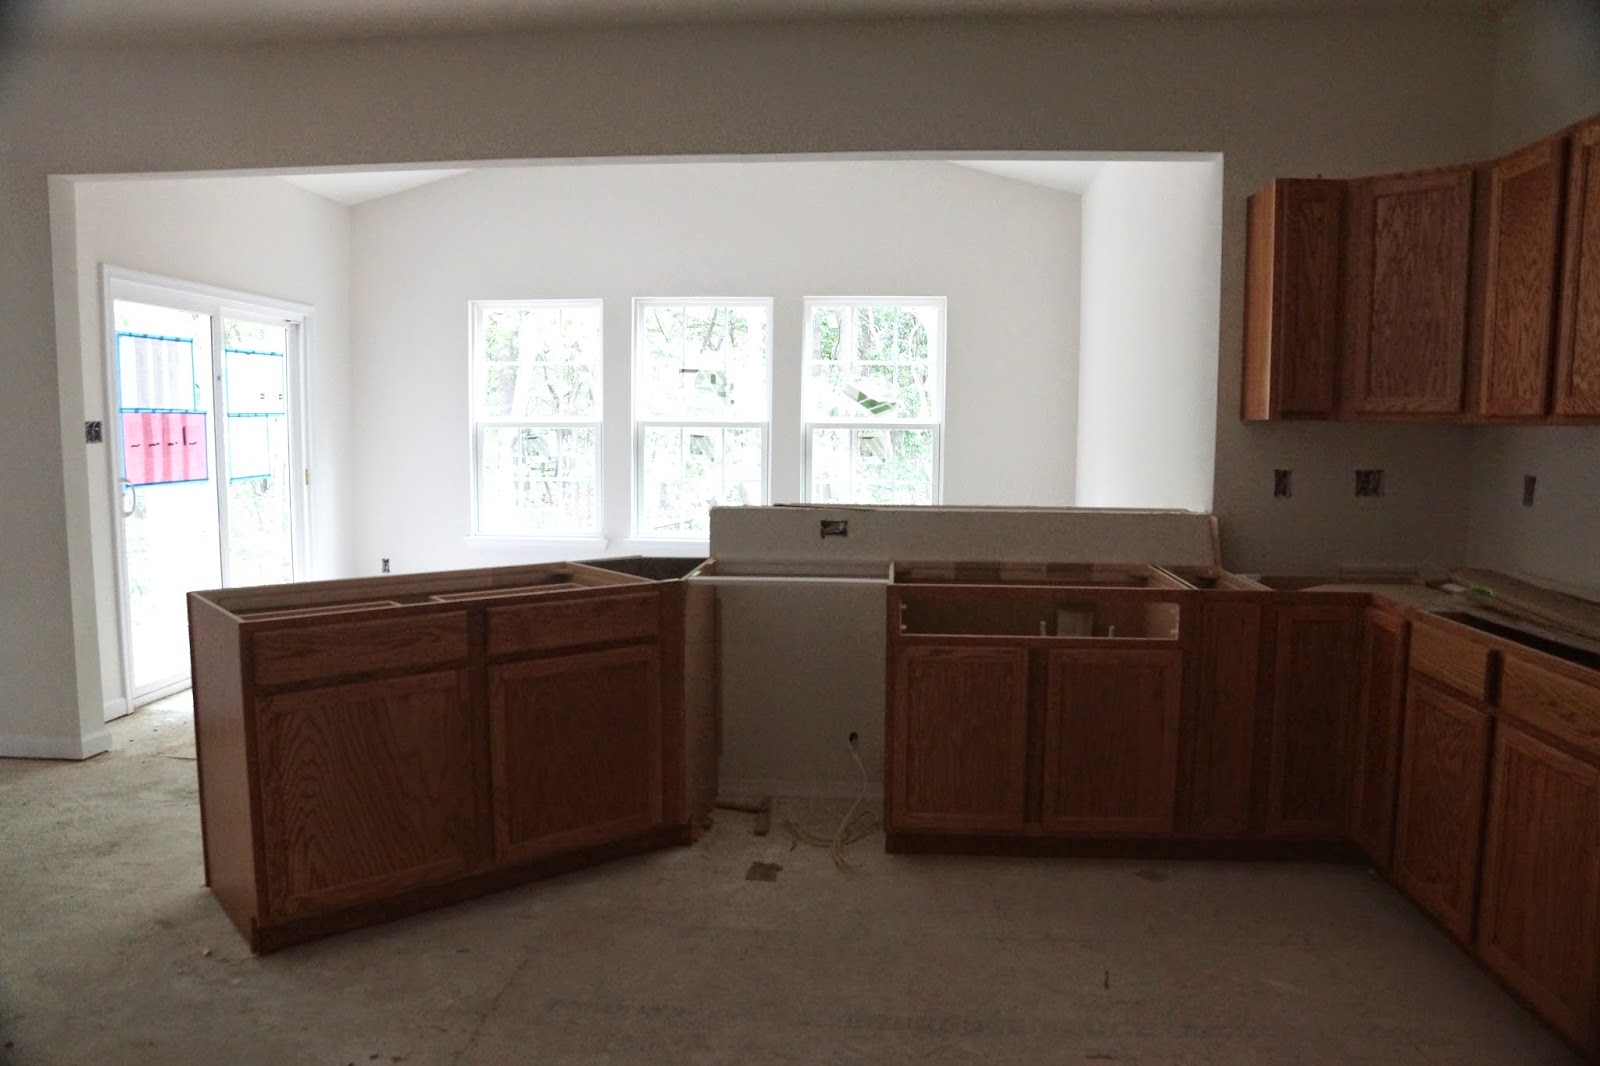 Picture of the kitchen cabinets with gourmet island before the counter is installed